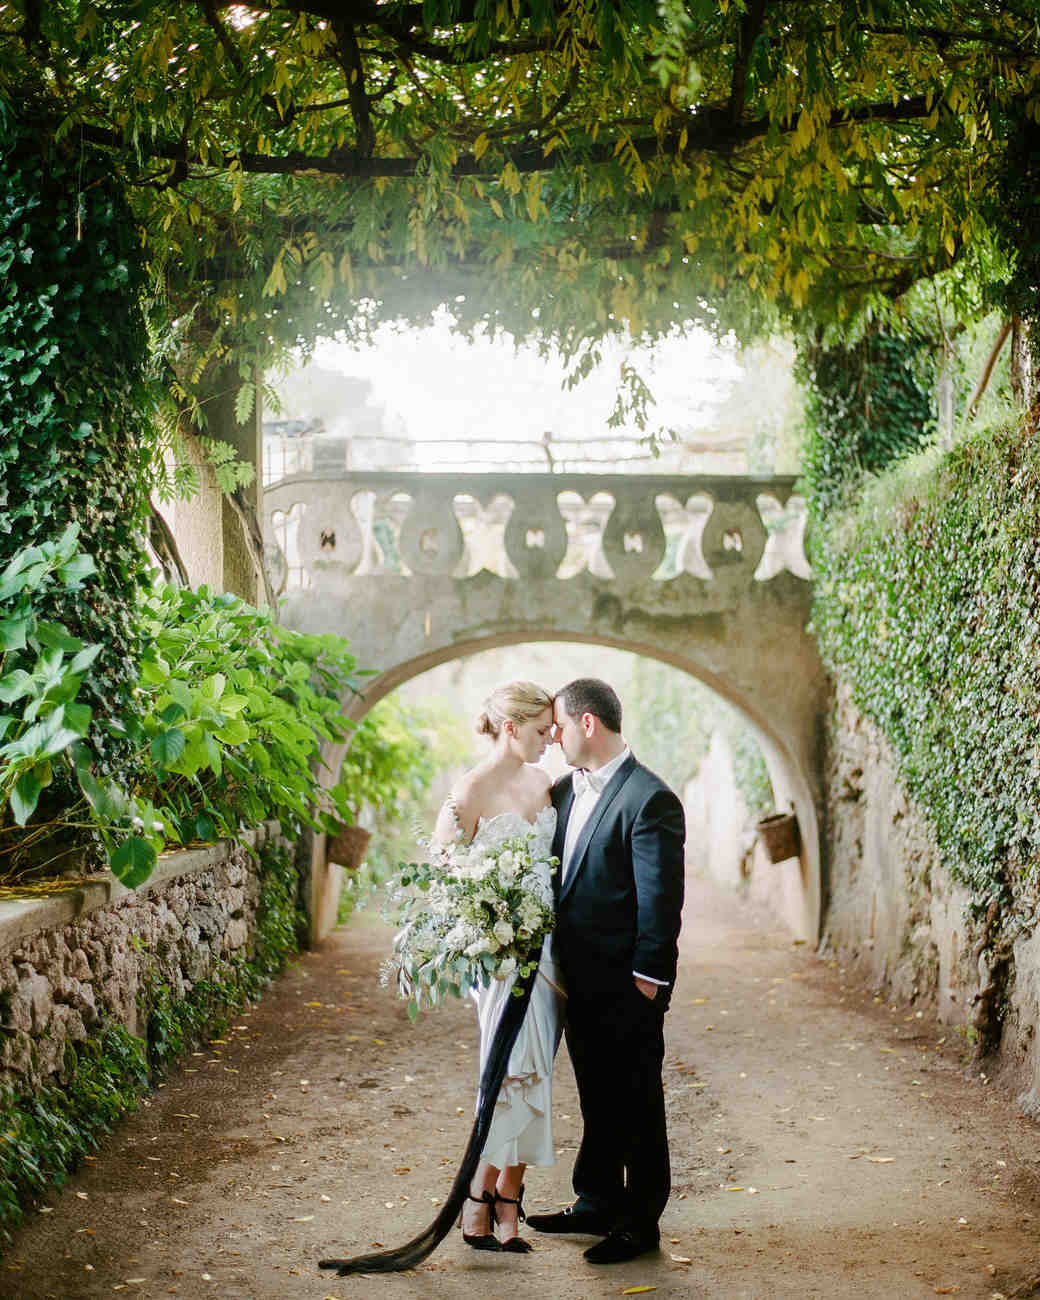 Destination weddings martha stewart weddings a chic intimate destination wedding on the amalfi coast junglespirit Images